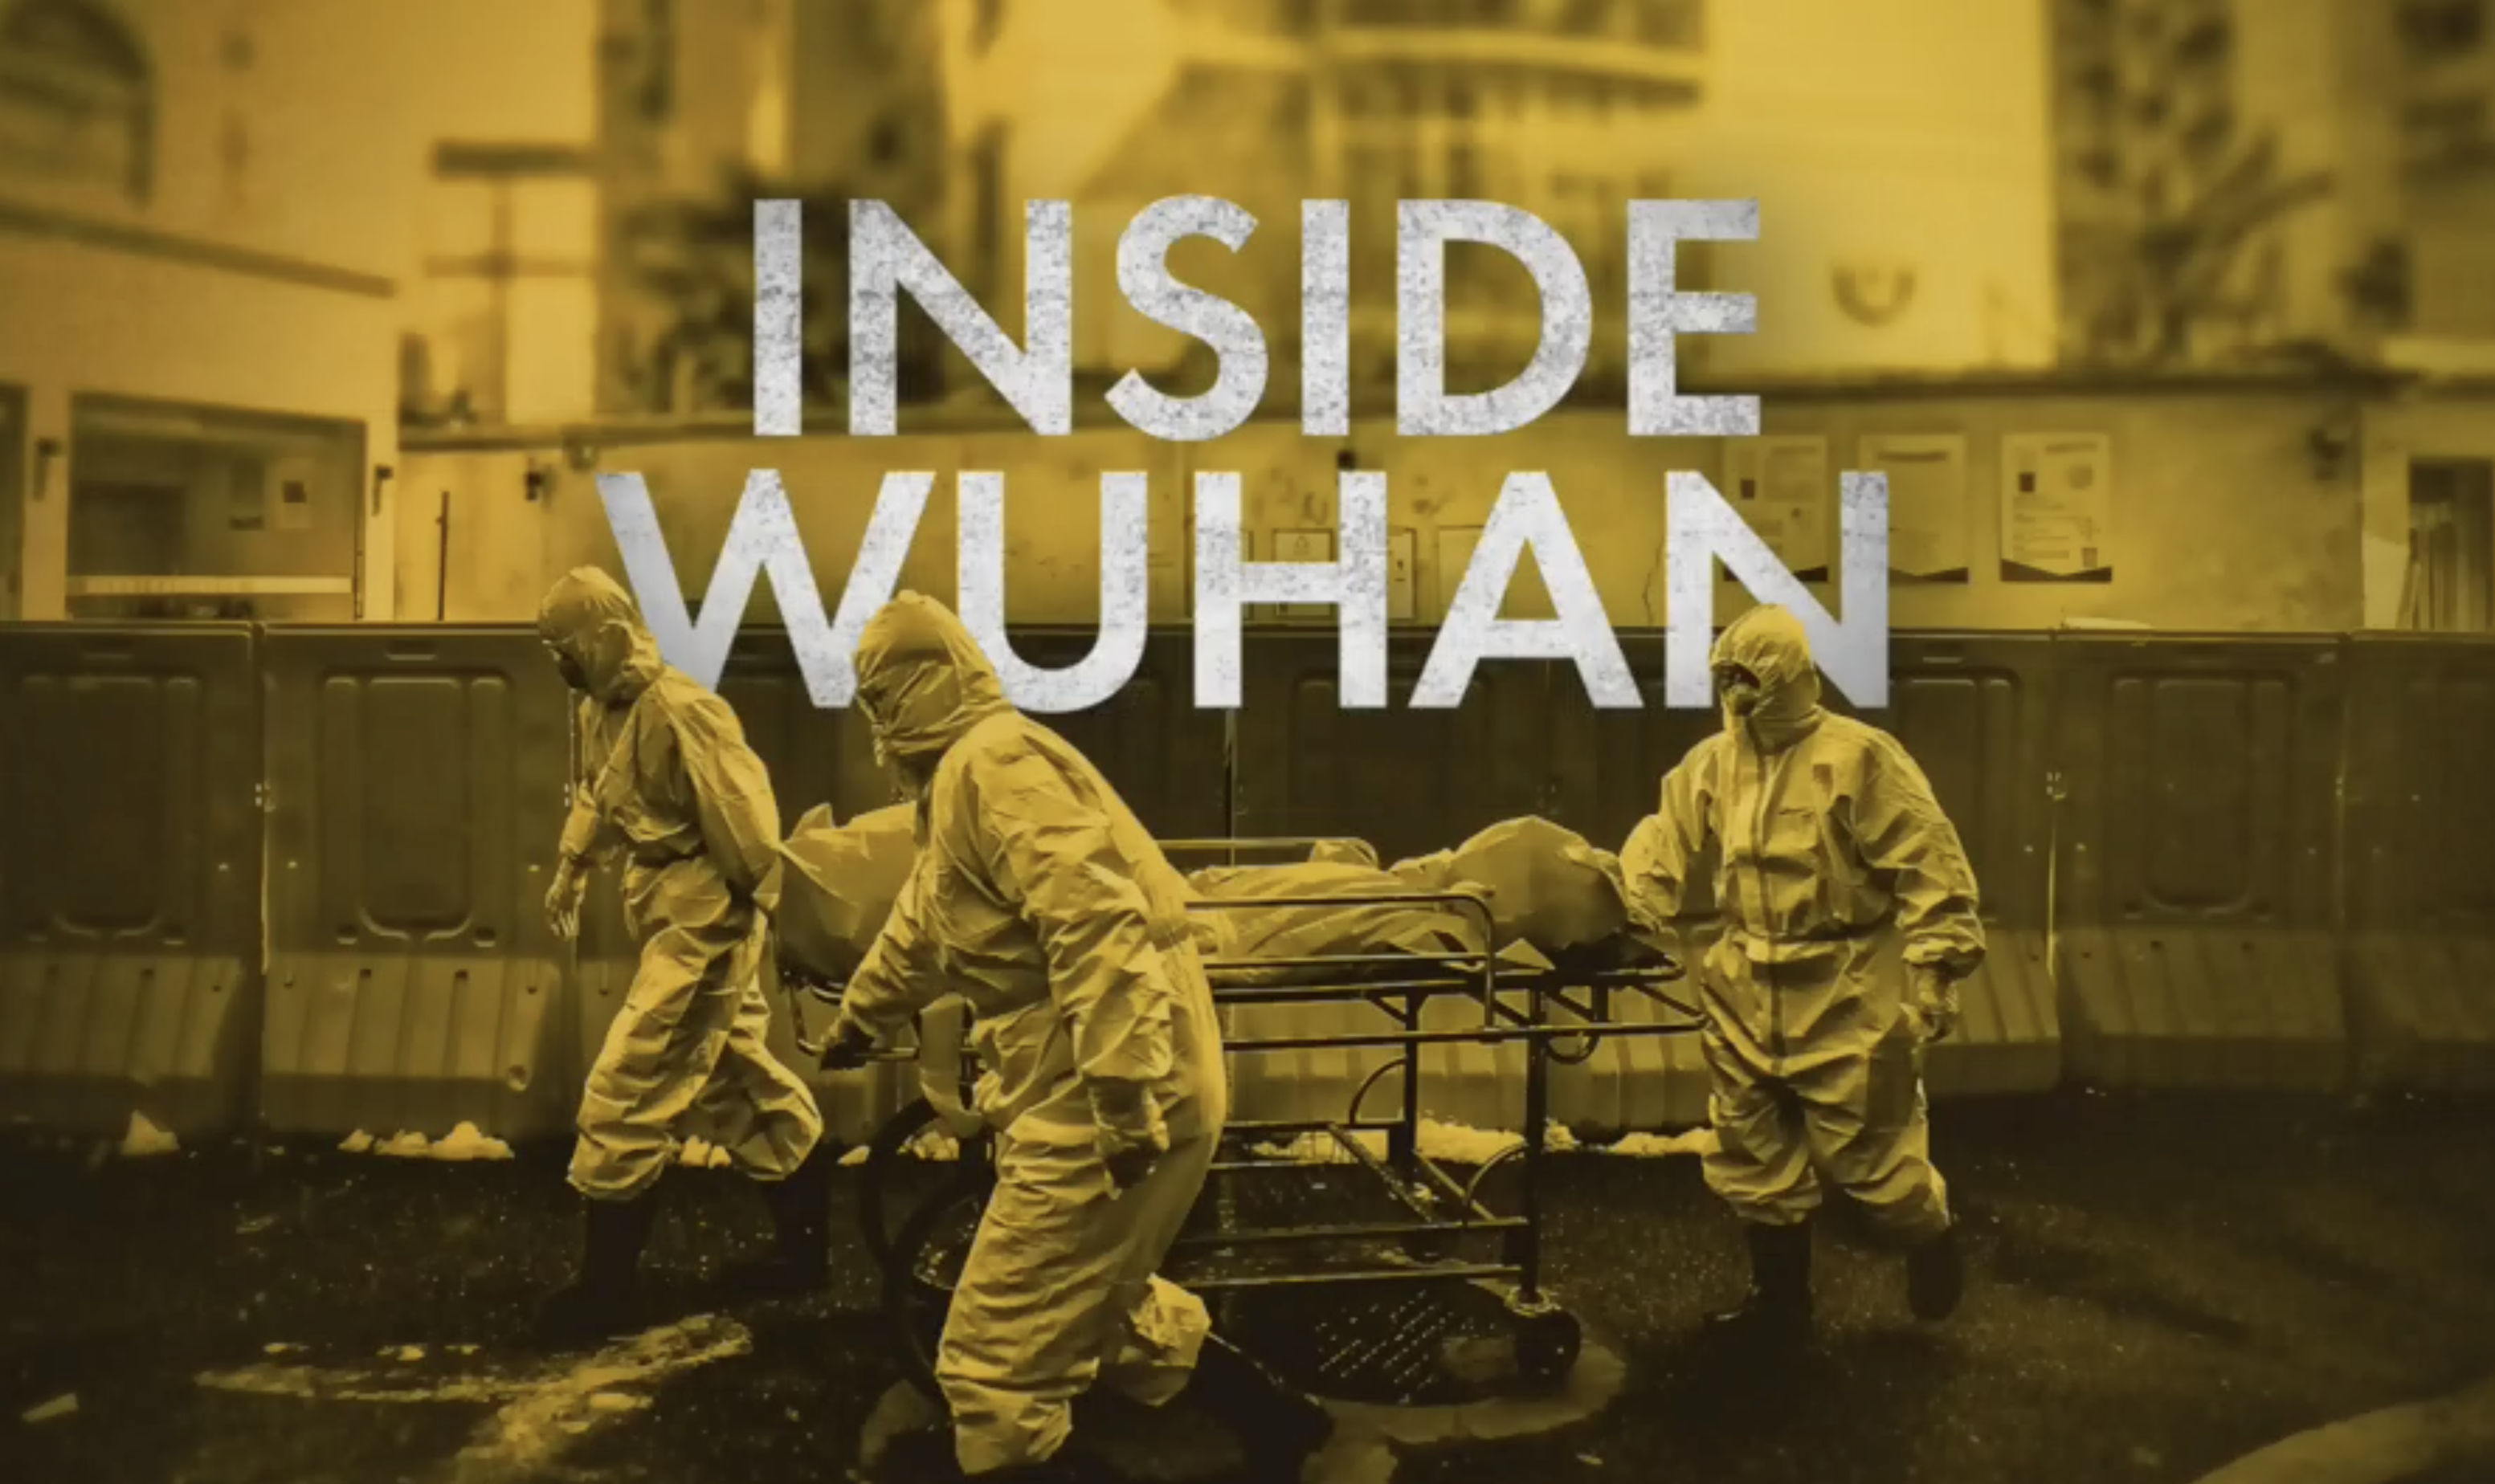 https://www.ctvnews.ca/w5/canadian-documents-life-inside-wuhan-city-under-lockdown-to-contain-covid-19-virus-1.4842352?fbclid